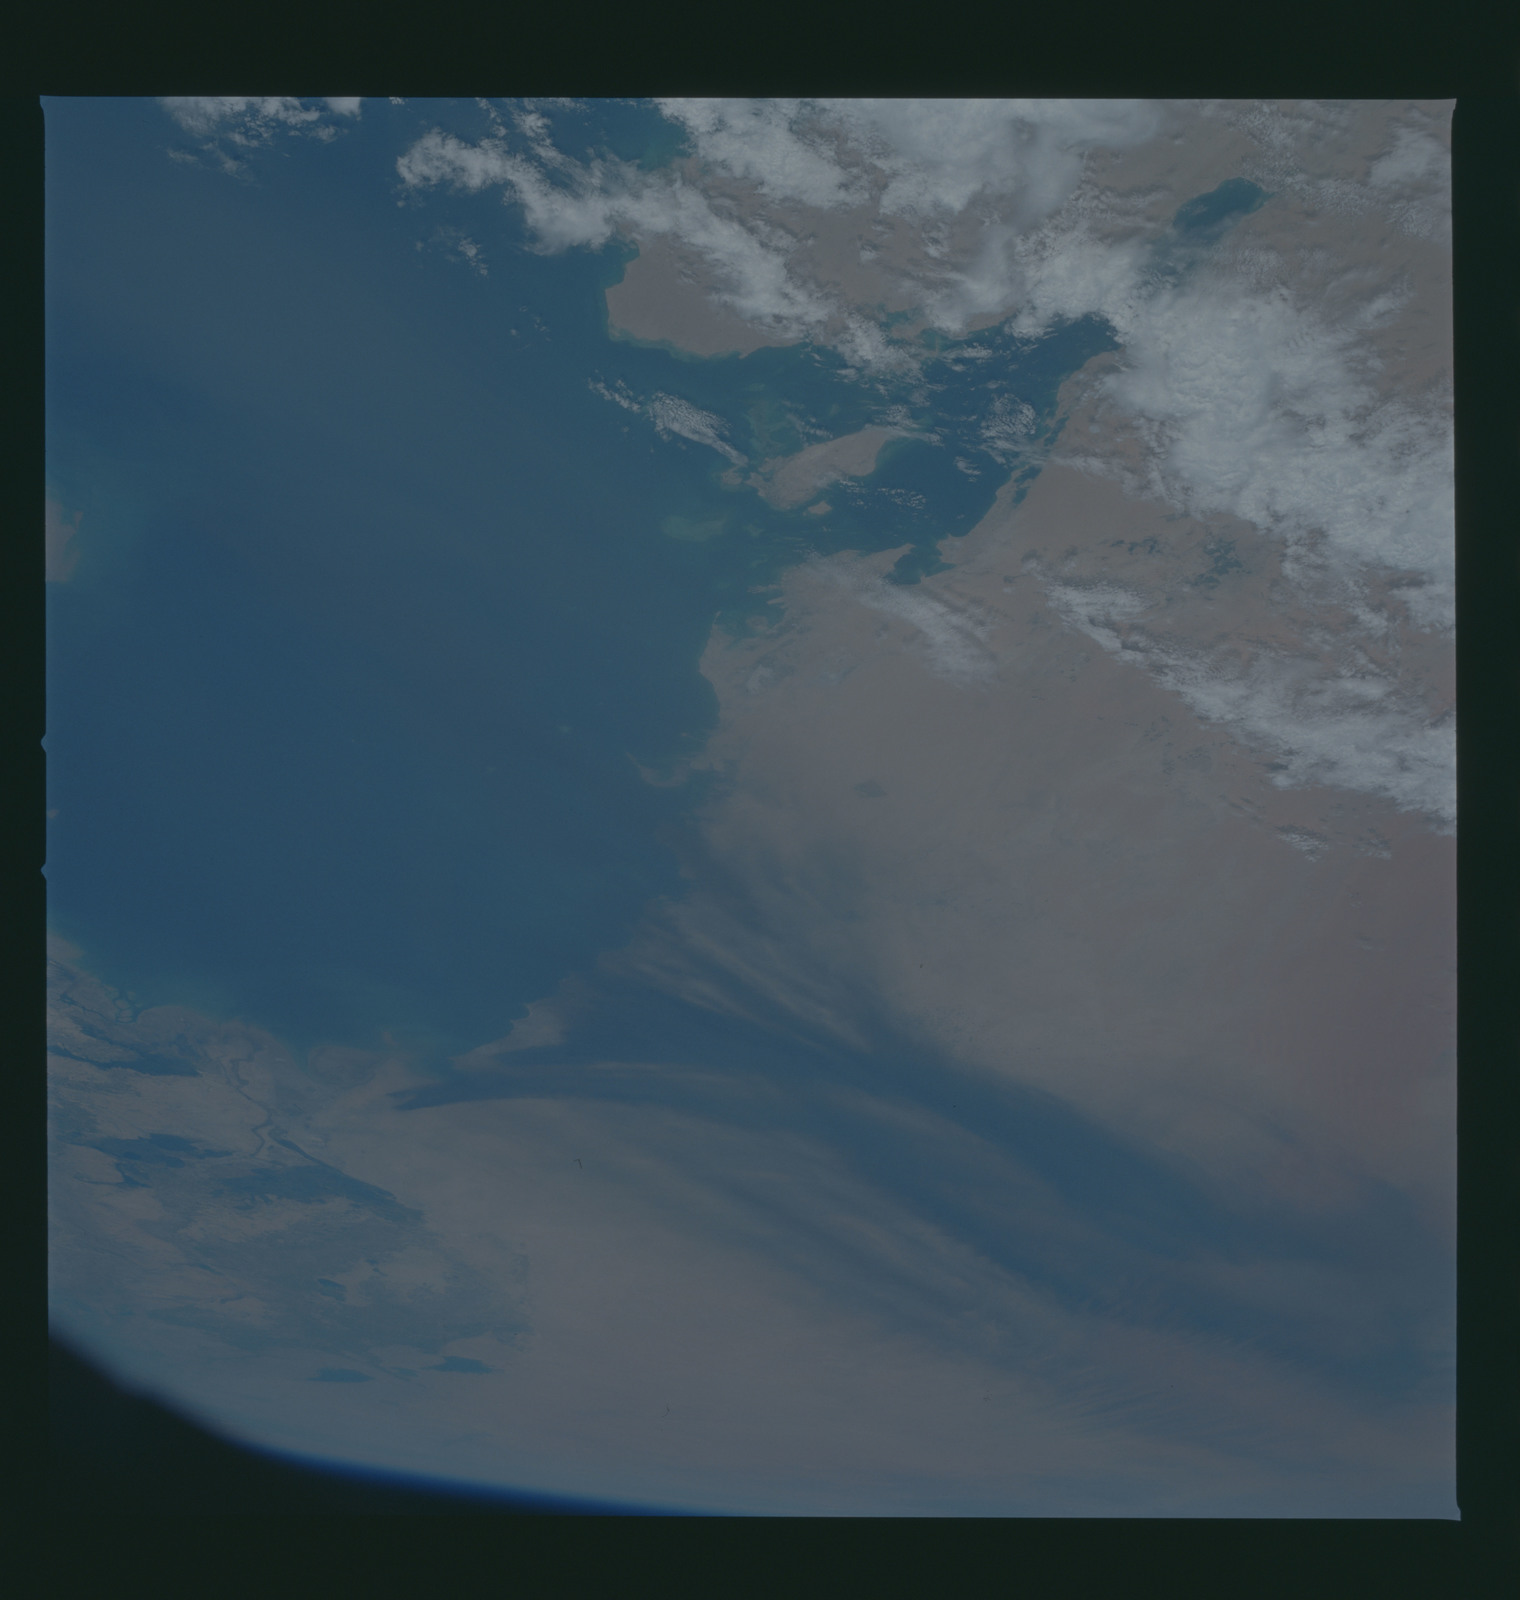 S37-94-055 - STS-037 - Earth observations taken from OV-104 during STS-37 mission